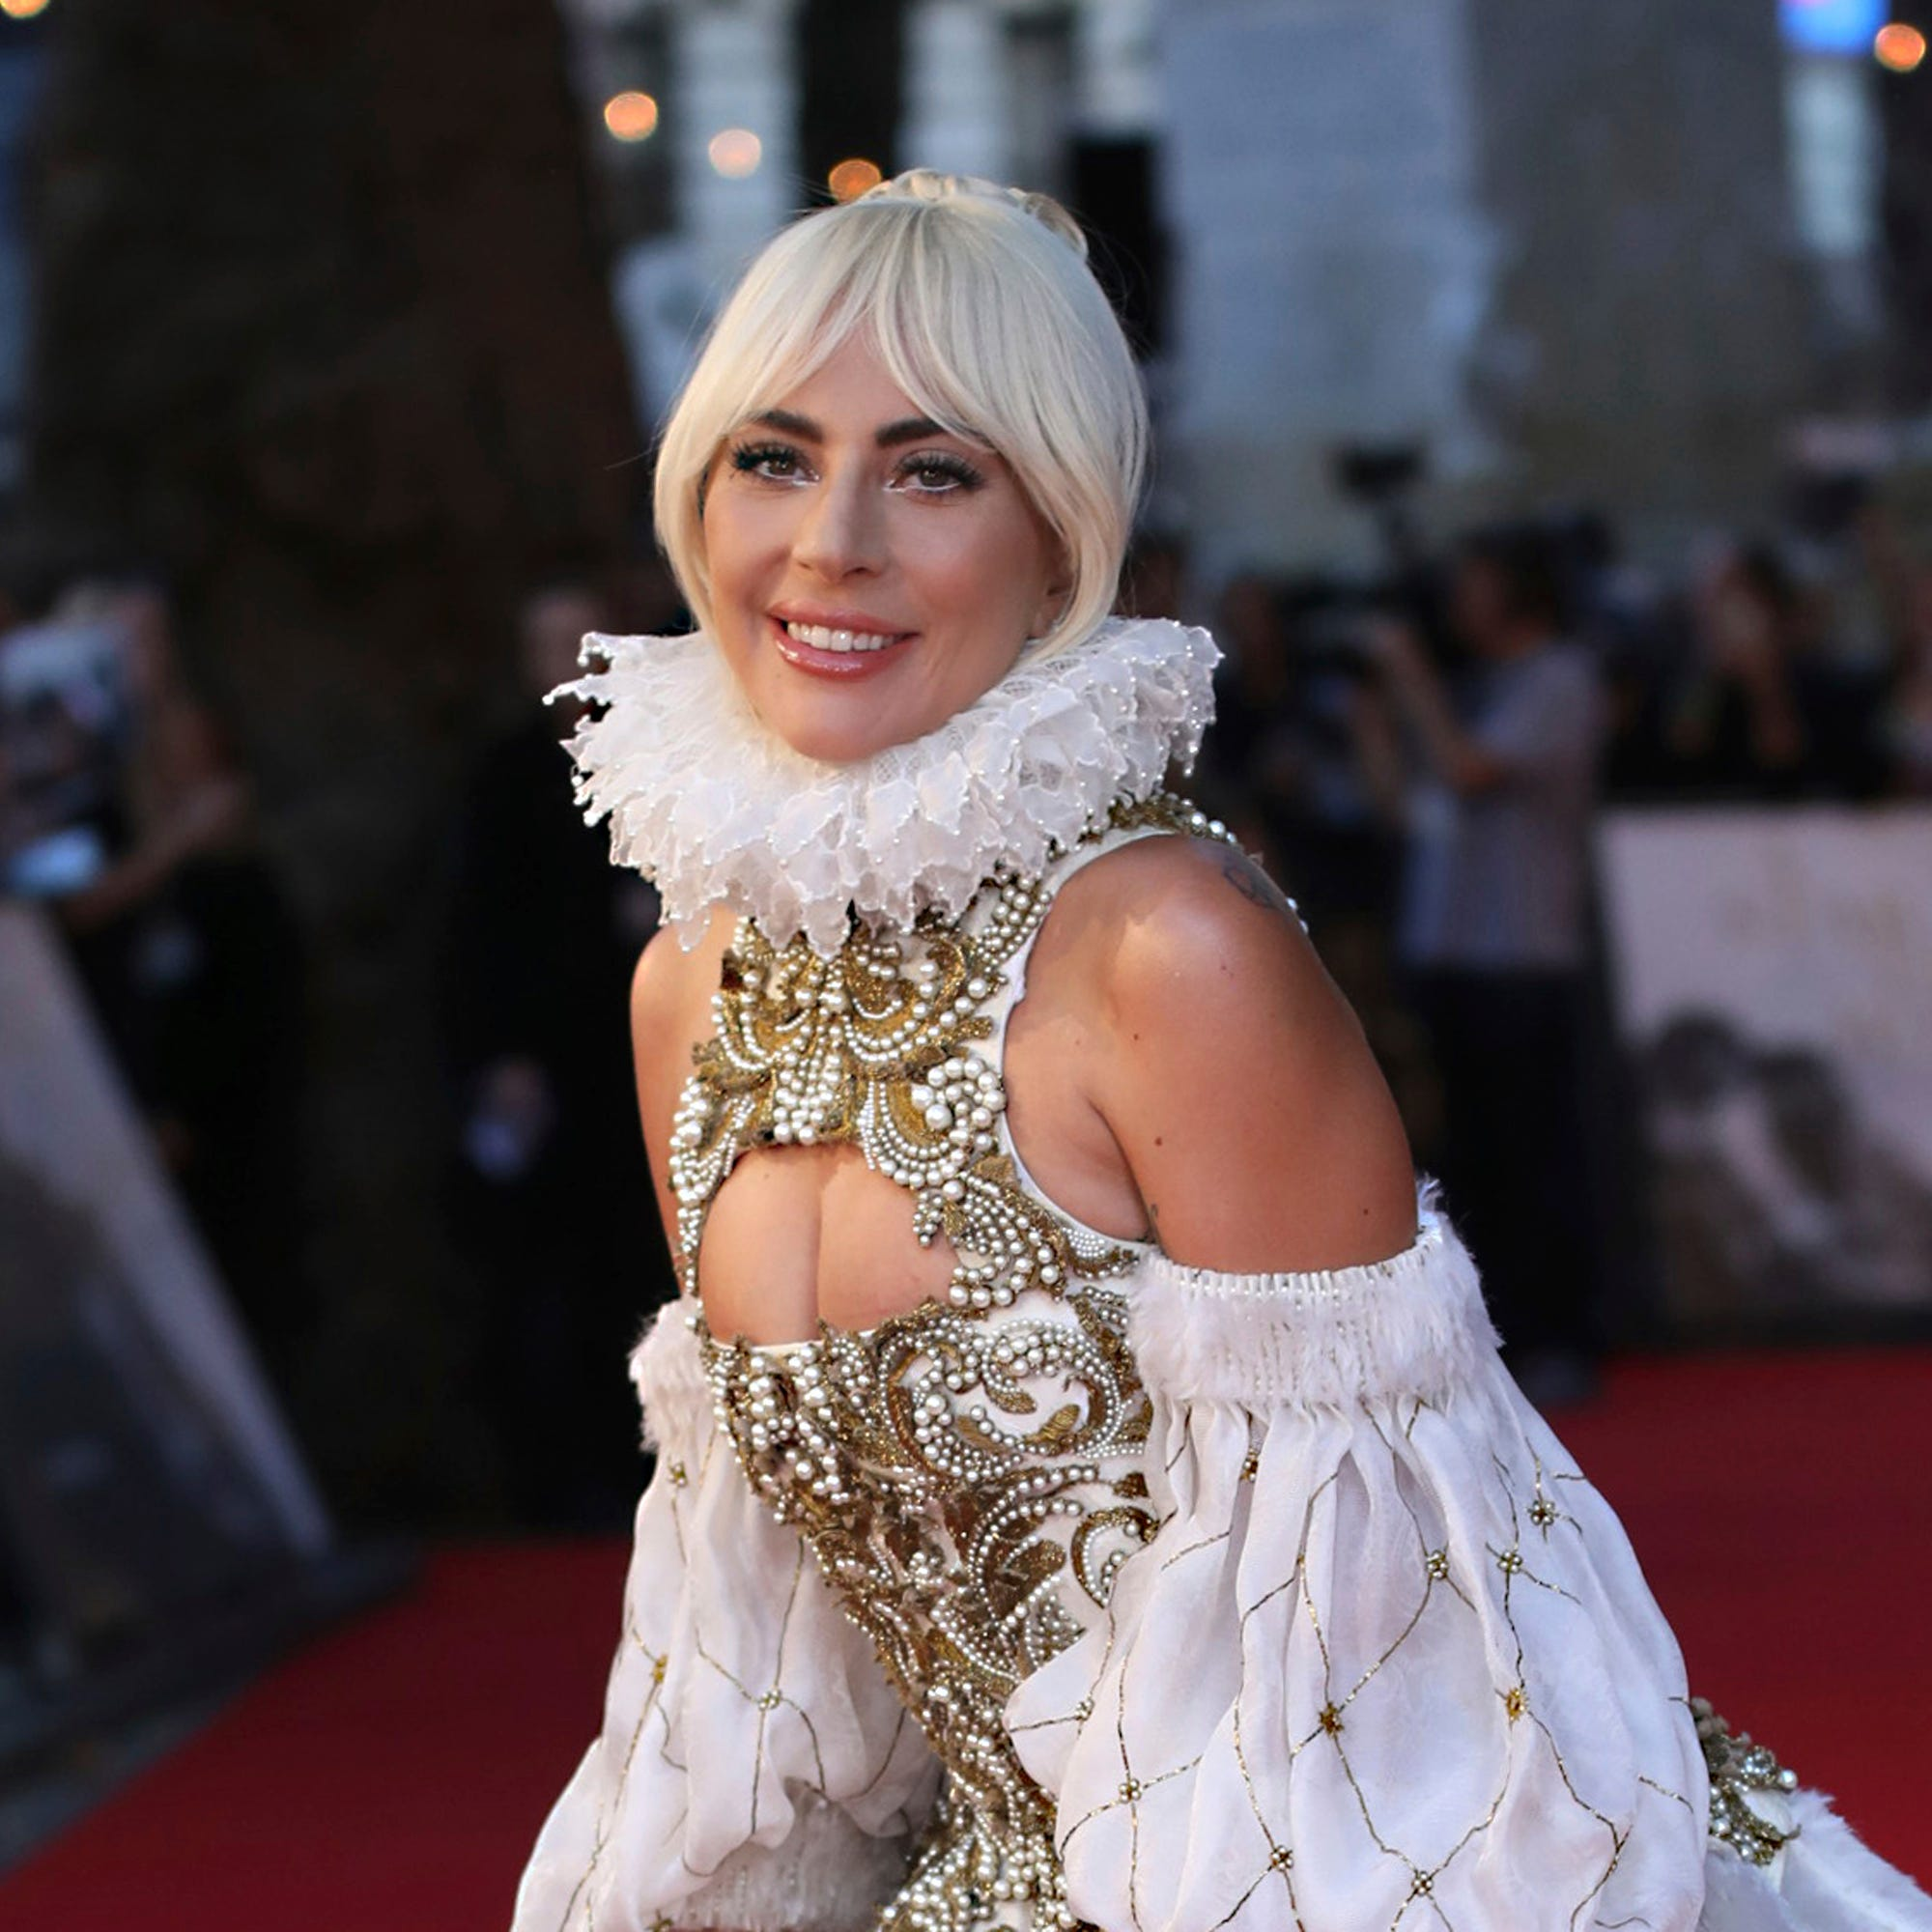 "FILE - In this Sept. 27, 2018, file photo, actress and singer Lady Gaga poses for photographers upon arrival at the premiere of the film ""A Star Is Born"" in London. Next year's Met Gala theme will be 'camp,' organizers revealed Tuesday, Oct. 9. It's a shift in tone and content from this year's meditation on Catholicism. The celebrity co-chairs will include Lady Gaga, Serena Williams and Harry Styles, along with Gucci designer Alessandro Michele and Vogue editor Anna Wintour. (Photo by Vianney Le Caer/Invision/AP, File) ORG XMIT: NYHK206"